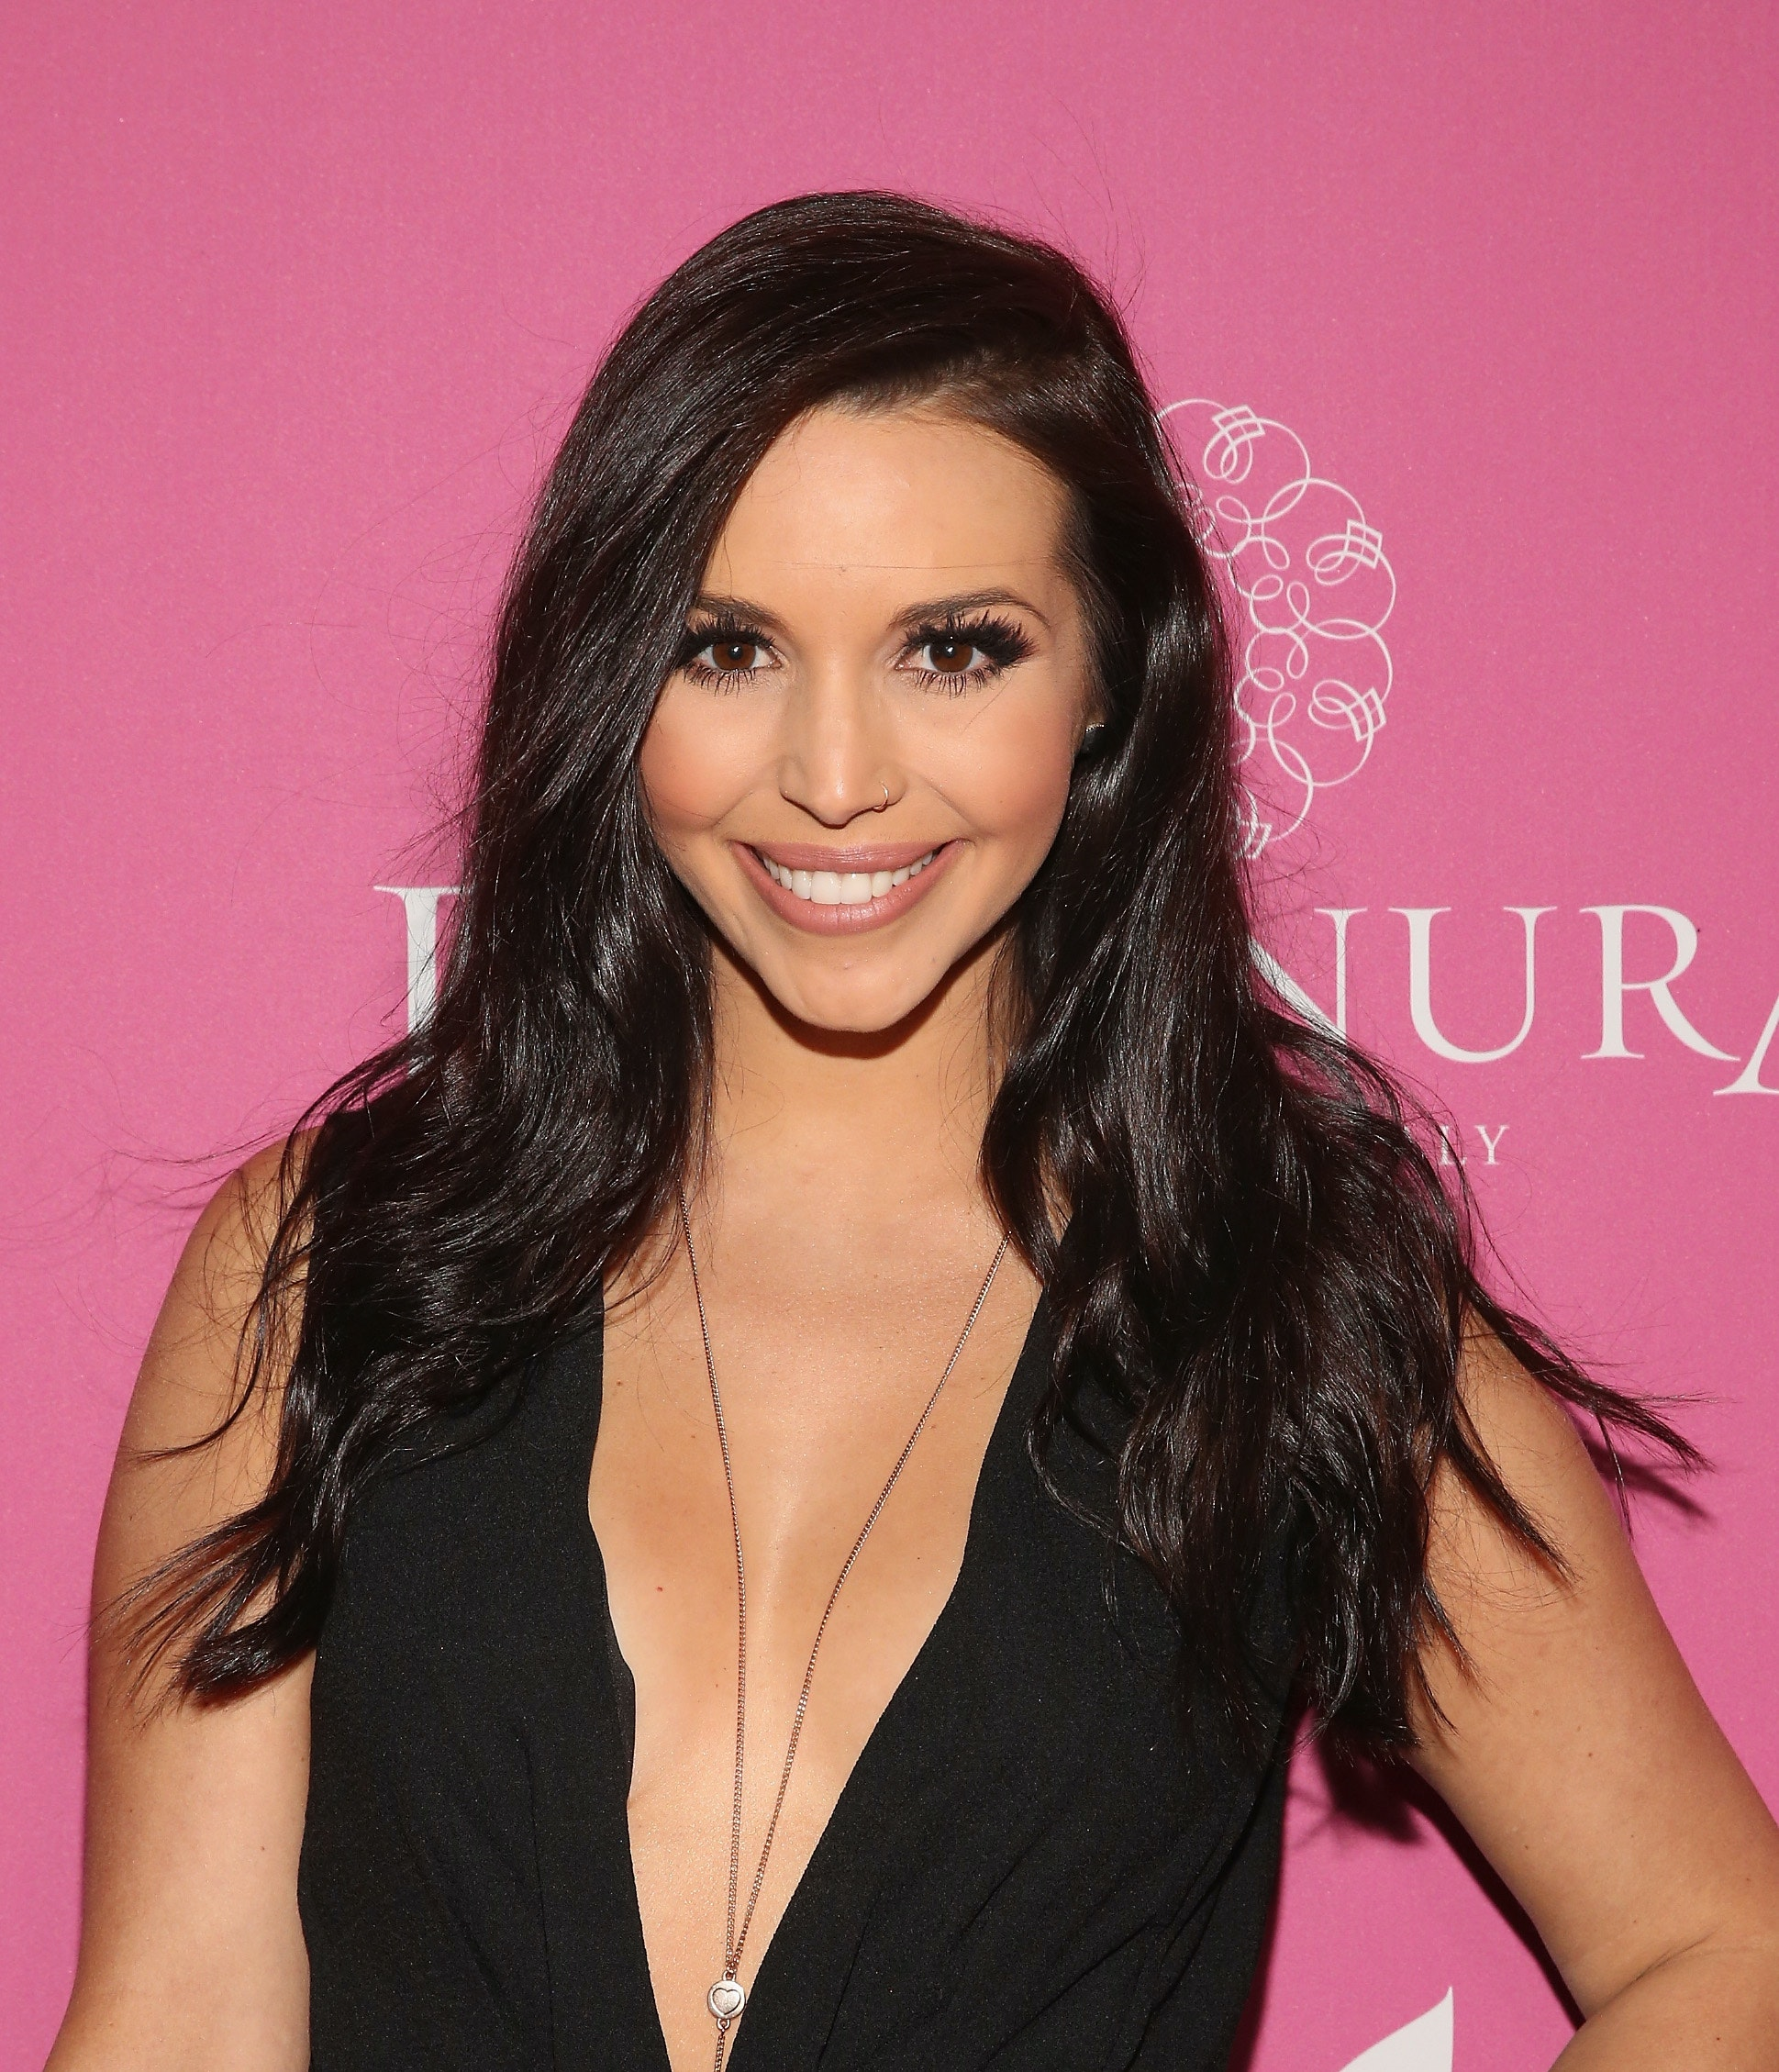 Vanderpump Rules Star Scheana Shay Was On Nickelodeon Show Victorious There Is Video To Prove It